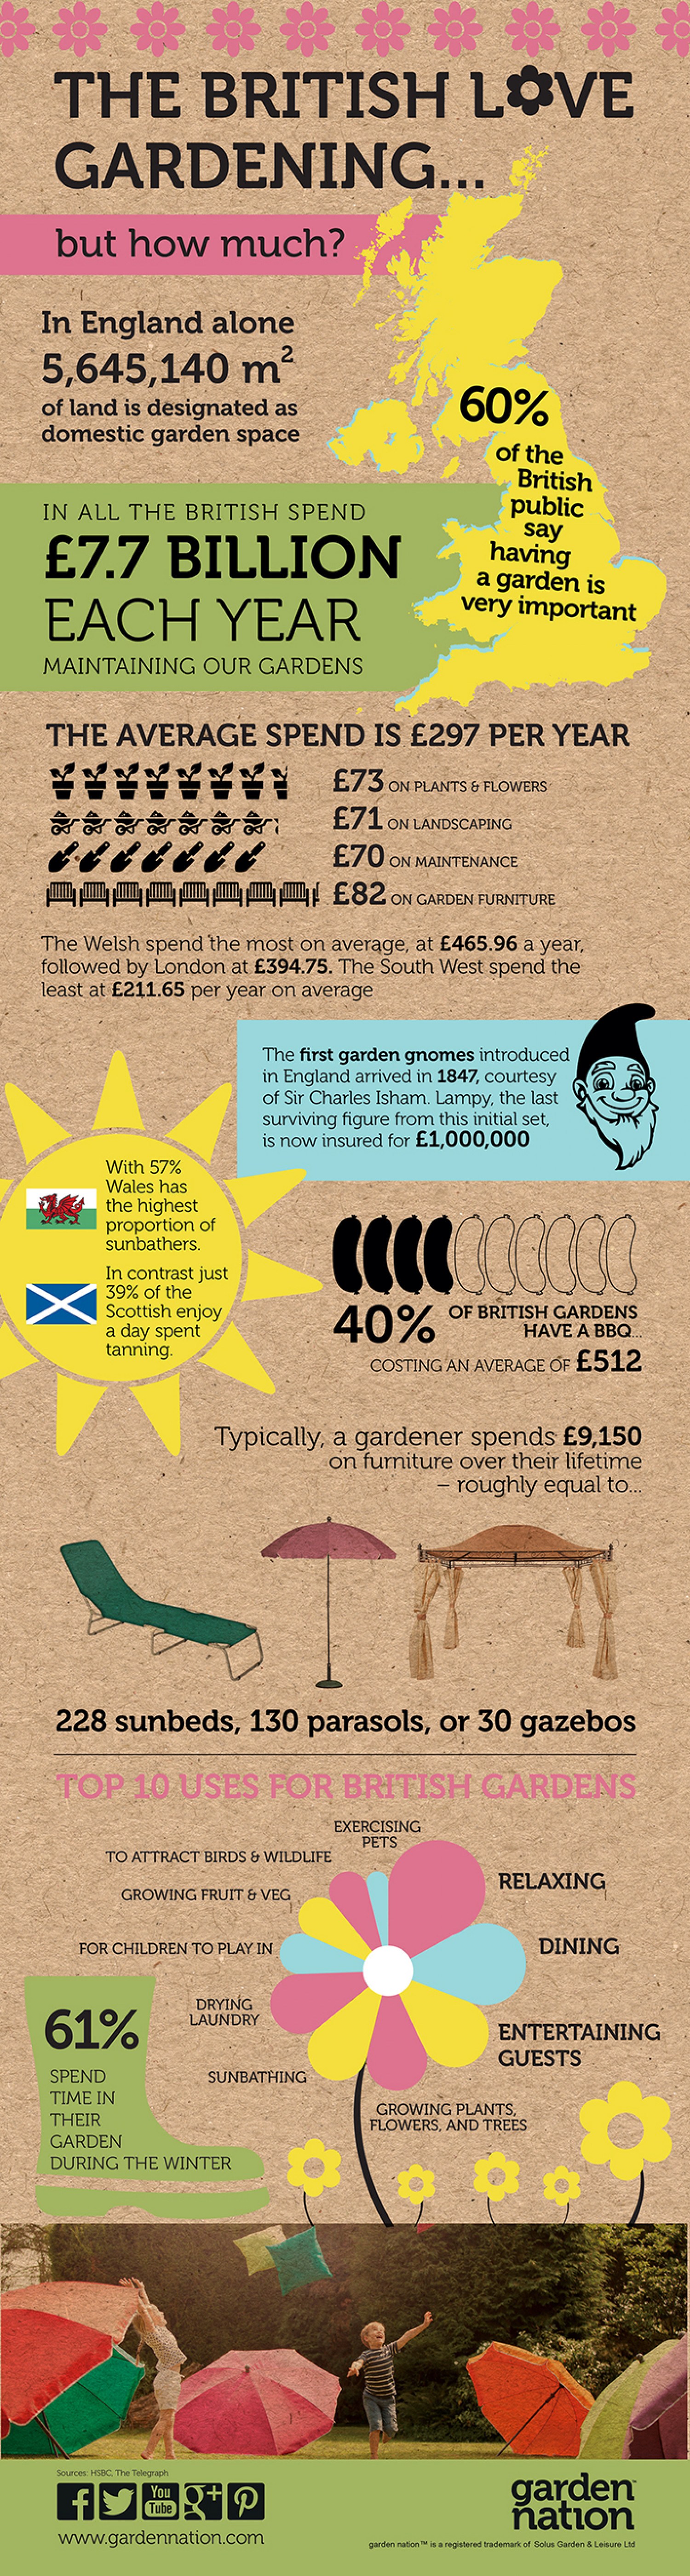 The British Love Gardening Infographic